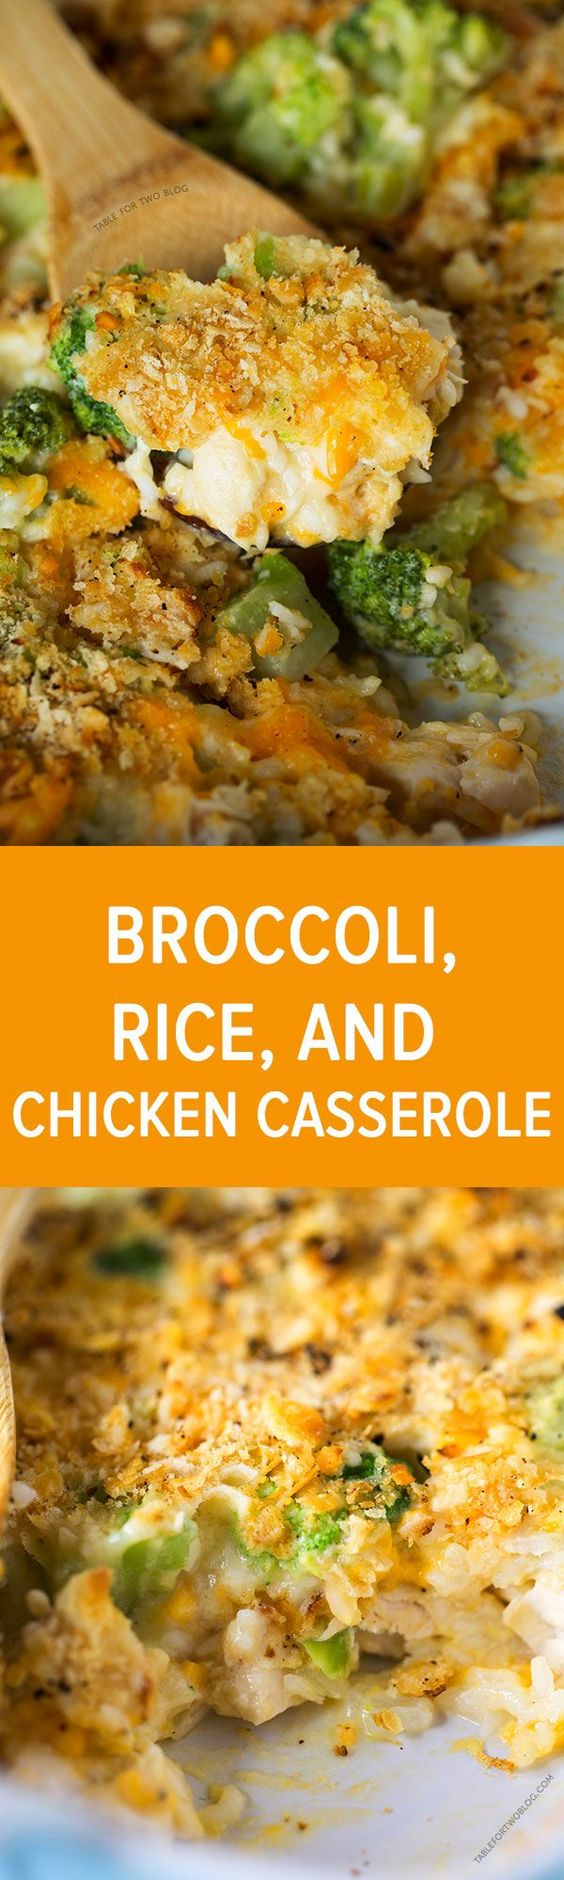 Delicious broccoli, rice and chicken casserole. Perfect for these chilly nights.